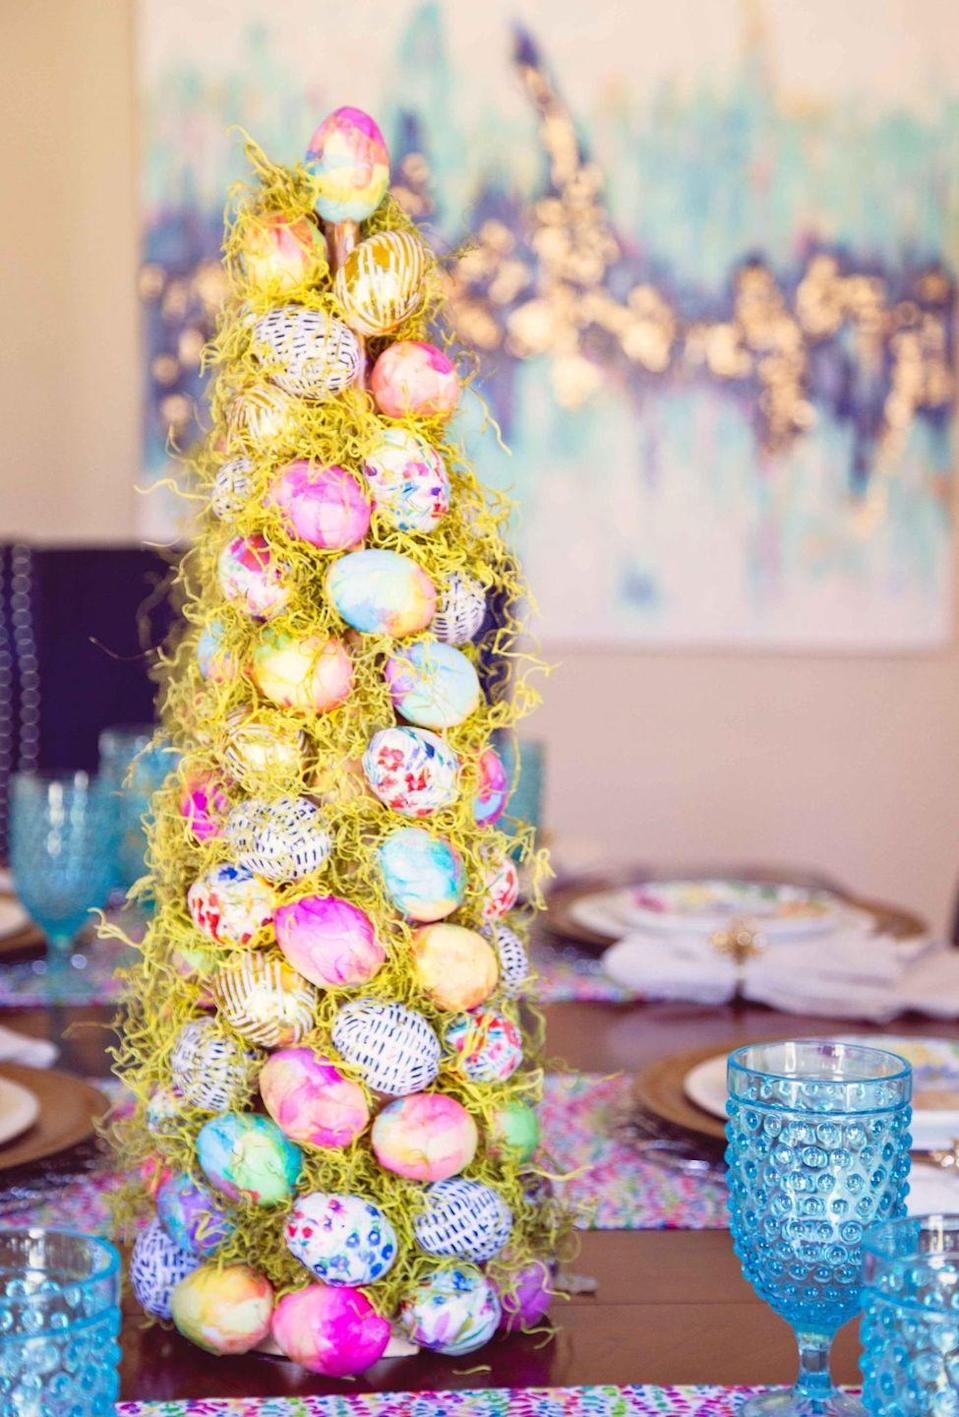 """<p>This happy tree may be time-consuming to make, but you'll use it for years to come! </p><p><strong>Get the tutorial at <a href=""""http://themajesticmama.com/make-beautiful-easter-tree/"""" rel=""""nofollow noopener"""" target=""""_blank"""" data-ylk=""""slk:The Majestic Mama"""" class=""""link rapid-noclick-resp"""">The Majestic Mama</a>.</strong></p>"""